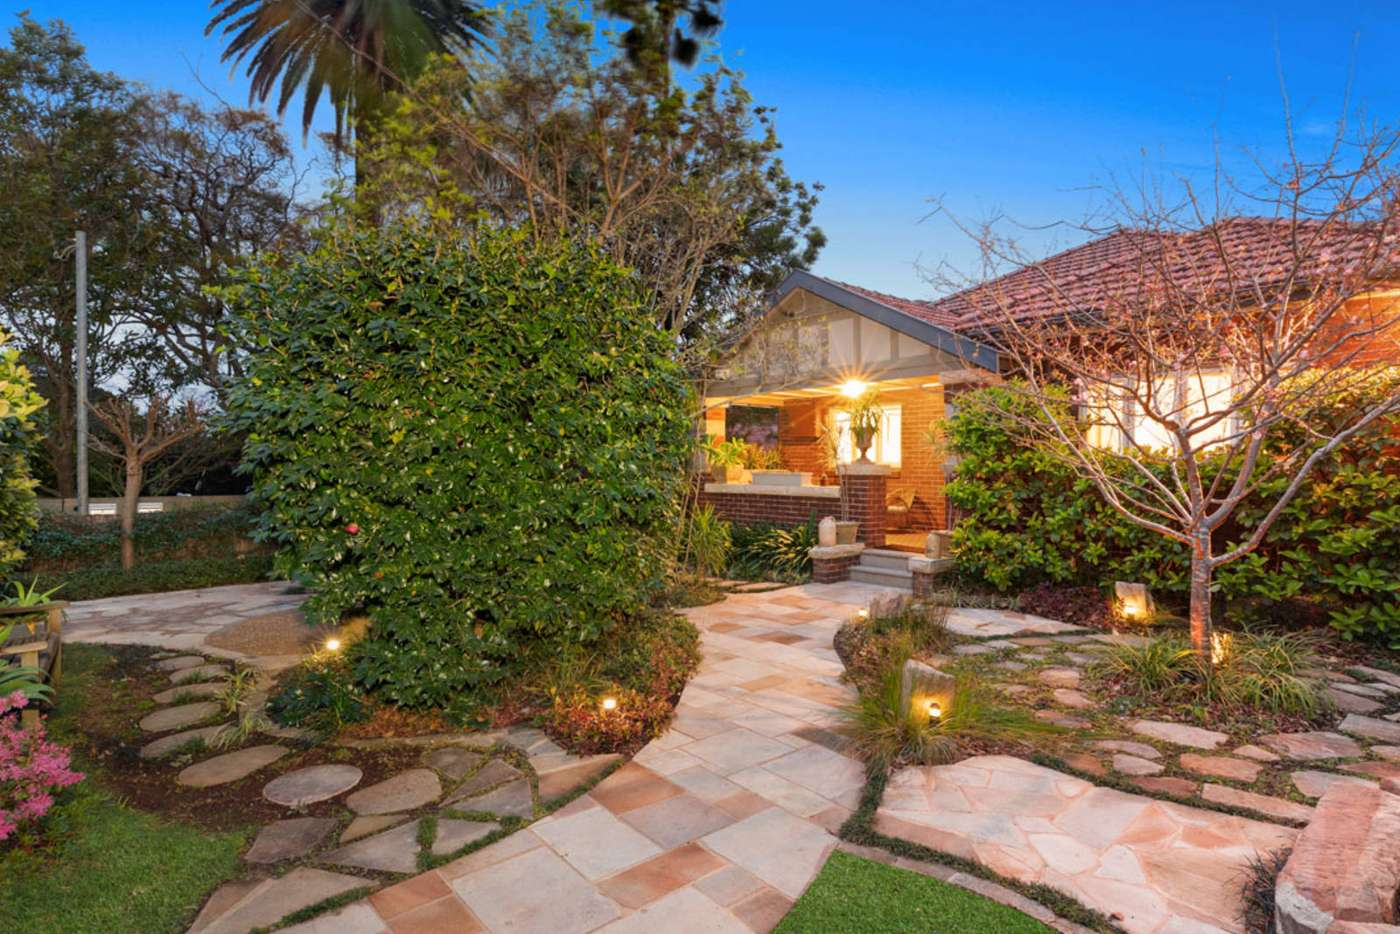 Main view of Homely house listing, 63 Sydney Street, Willoughby NSW 2068